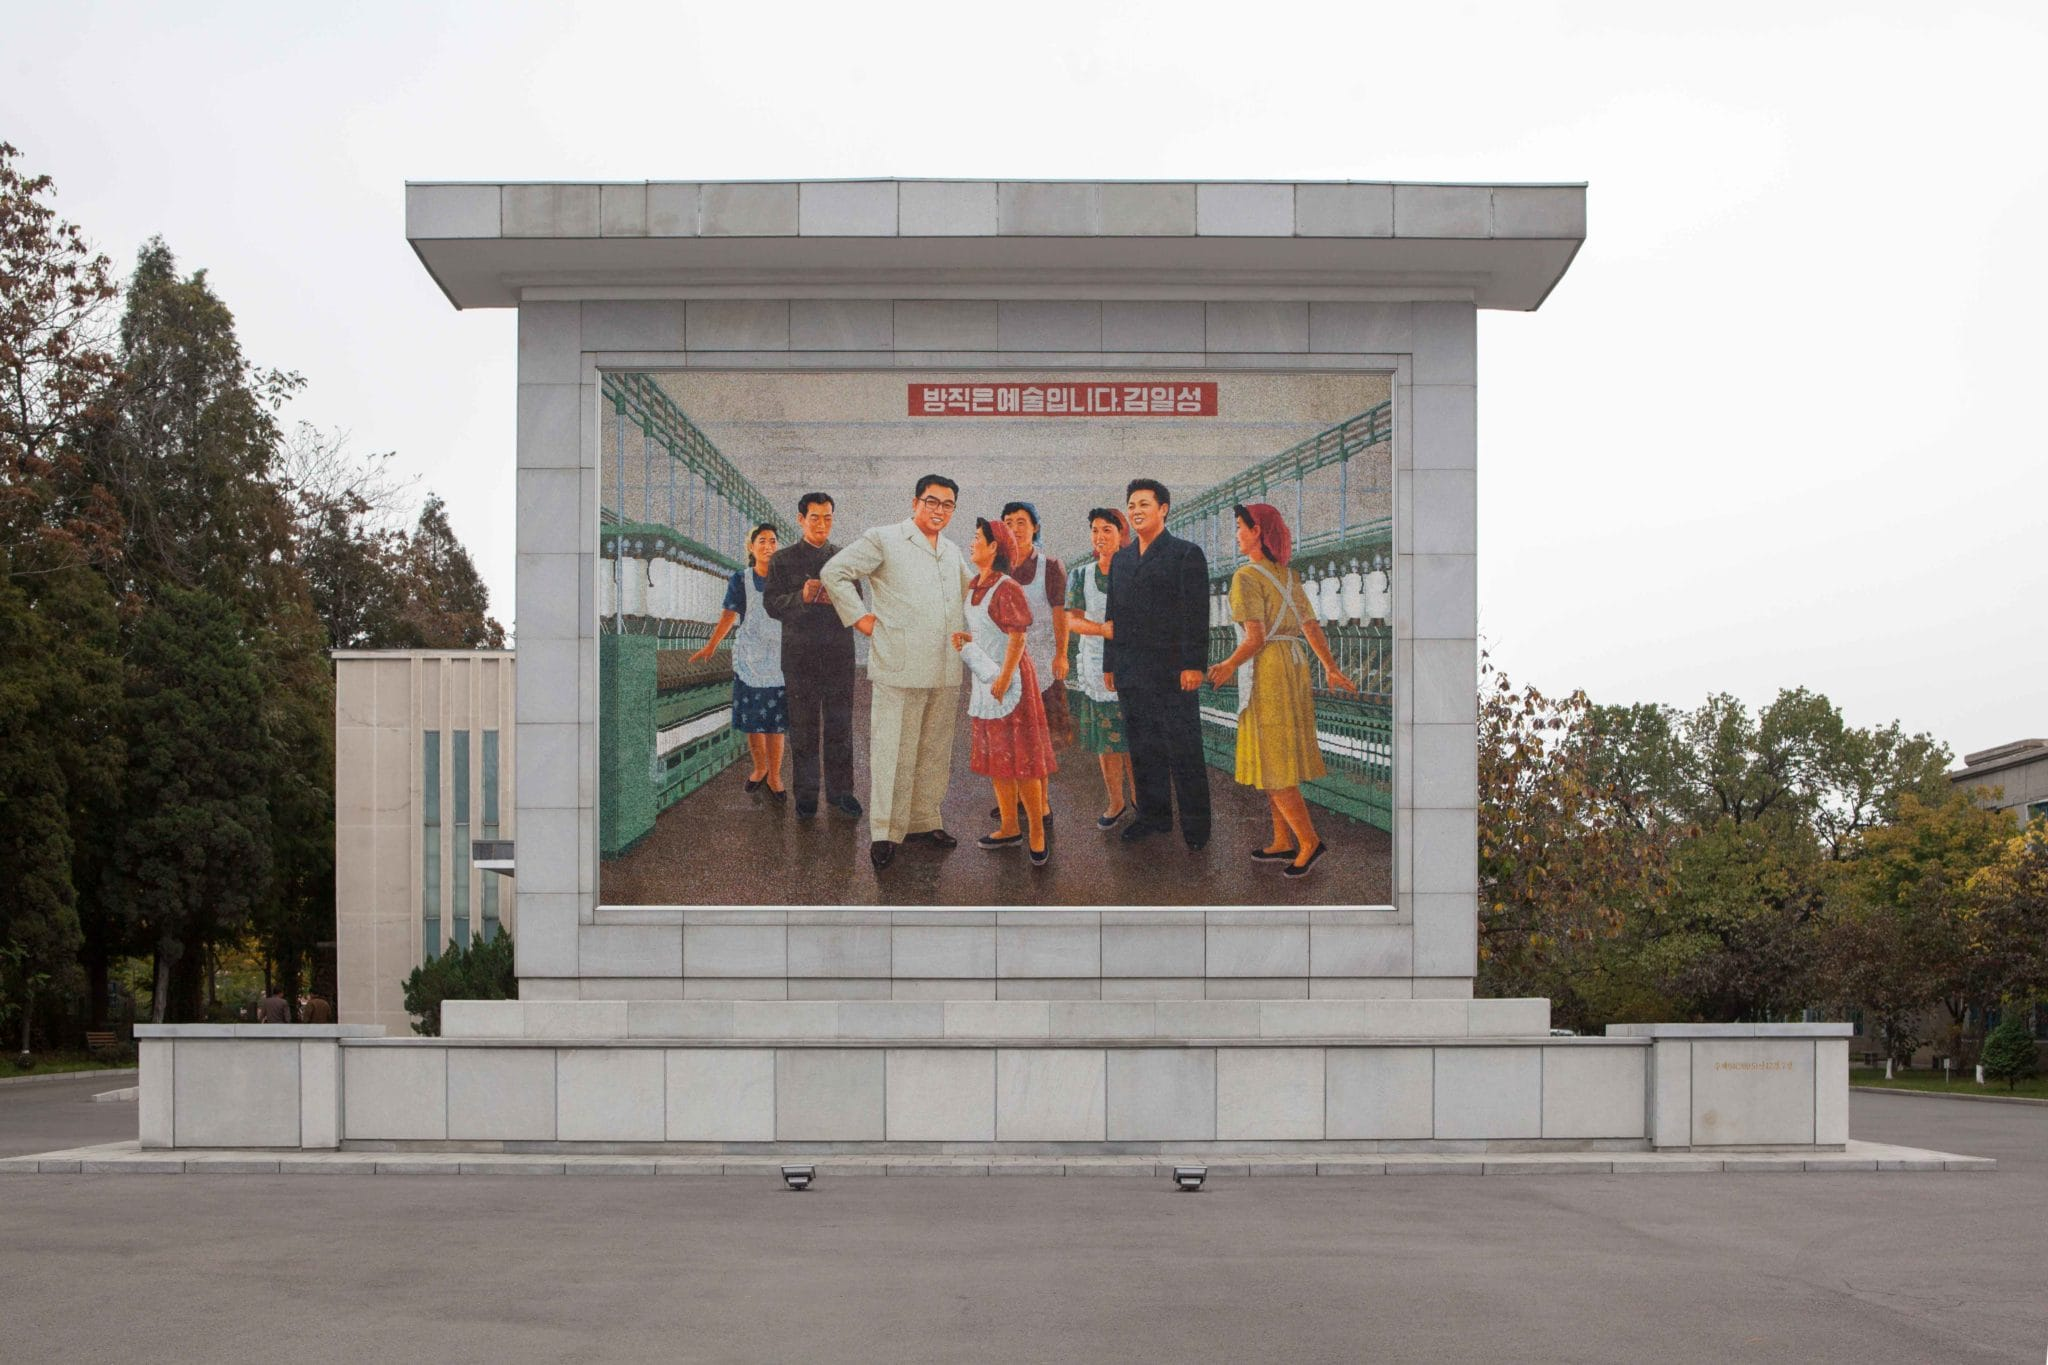 North Korea, « The Benevolent Sun », a book to come soon by Pierre Bessard, design by the Dutch artistic director SYB, Sybren Kuiper (Works 1990-2015) perhaps I'll come again, just for close definitely this one in end of the year… Serie « The great Leader » a panorama in all the country (30 cities, Pyongyang Sariwon Wonsan Hamhung Nampo Sinuiju Sunchon Haeju Kimchaek Chongjin Anju Sunchon Kaesong Kiliju Musan Chosan Kanggye Hungnam Yonan Handae-ri Sinpo Unsan… Editions Bessard